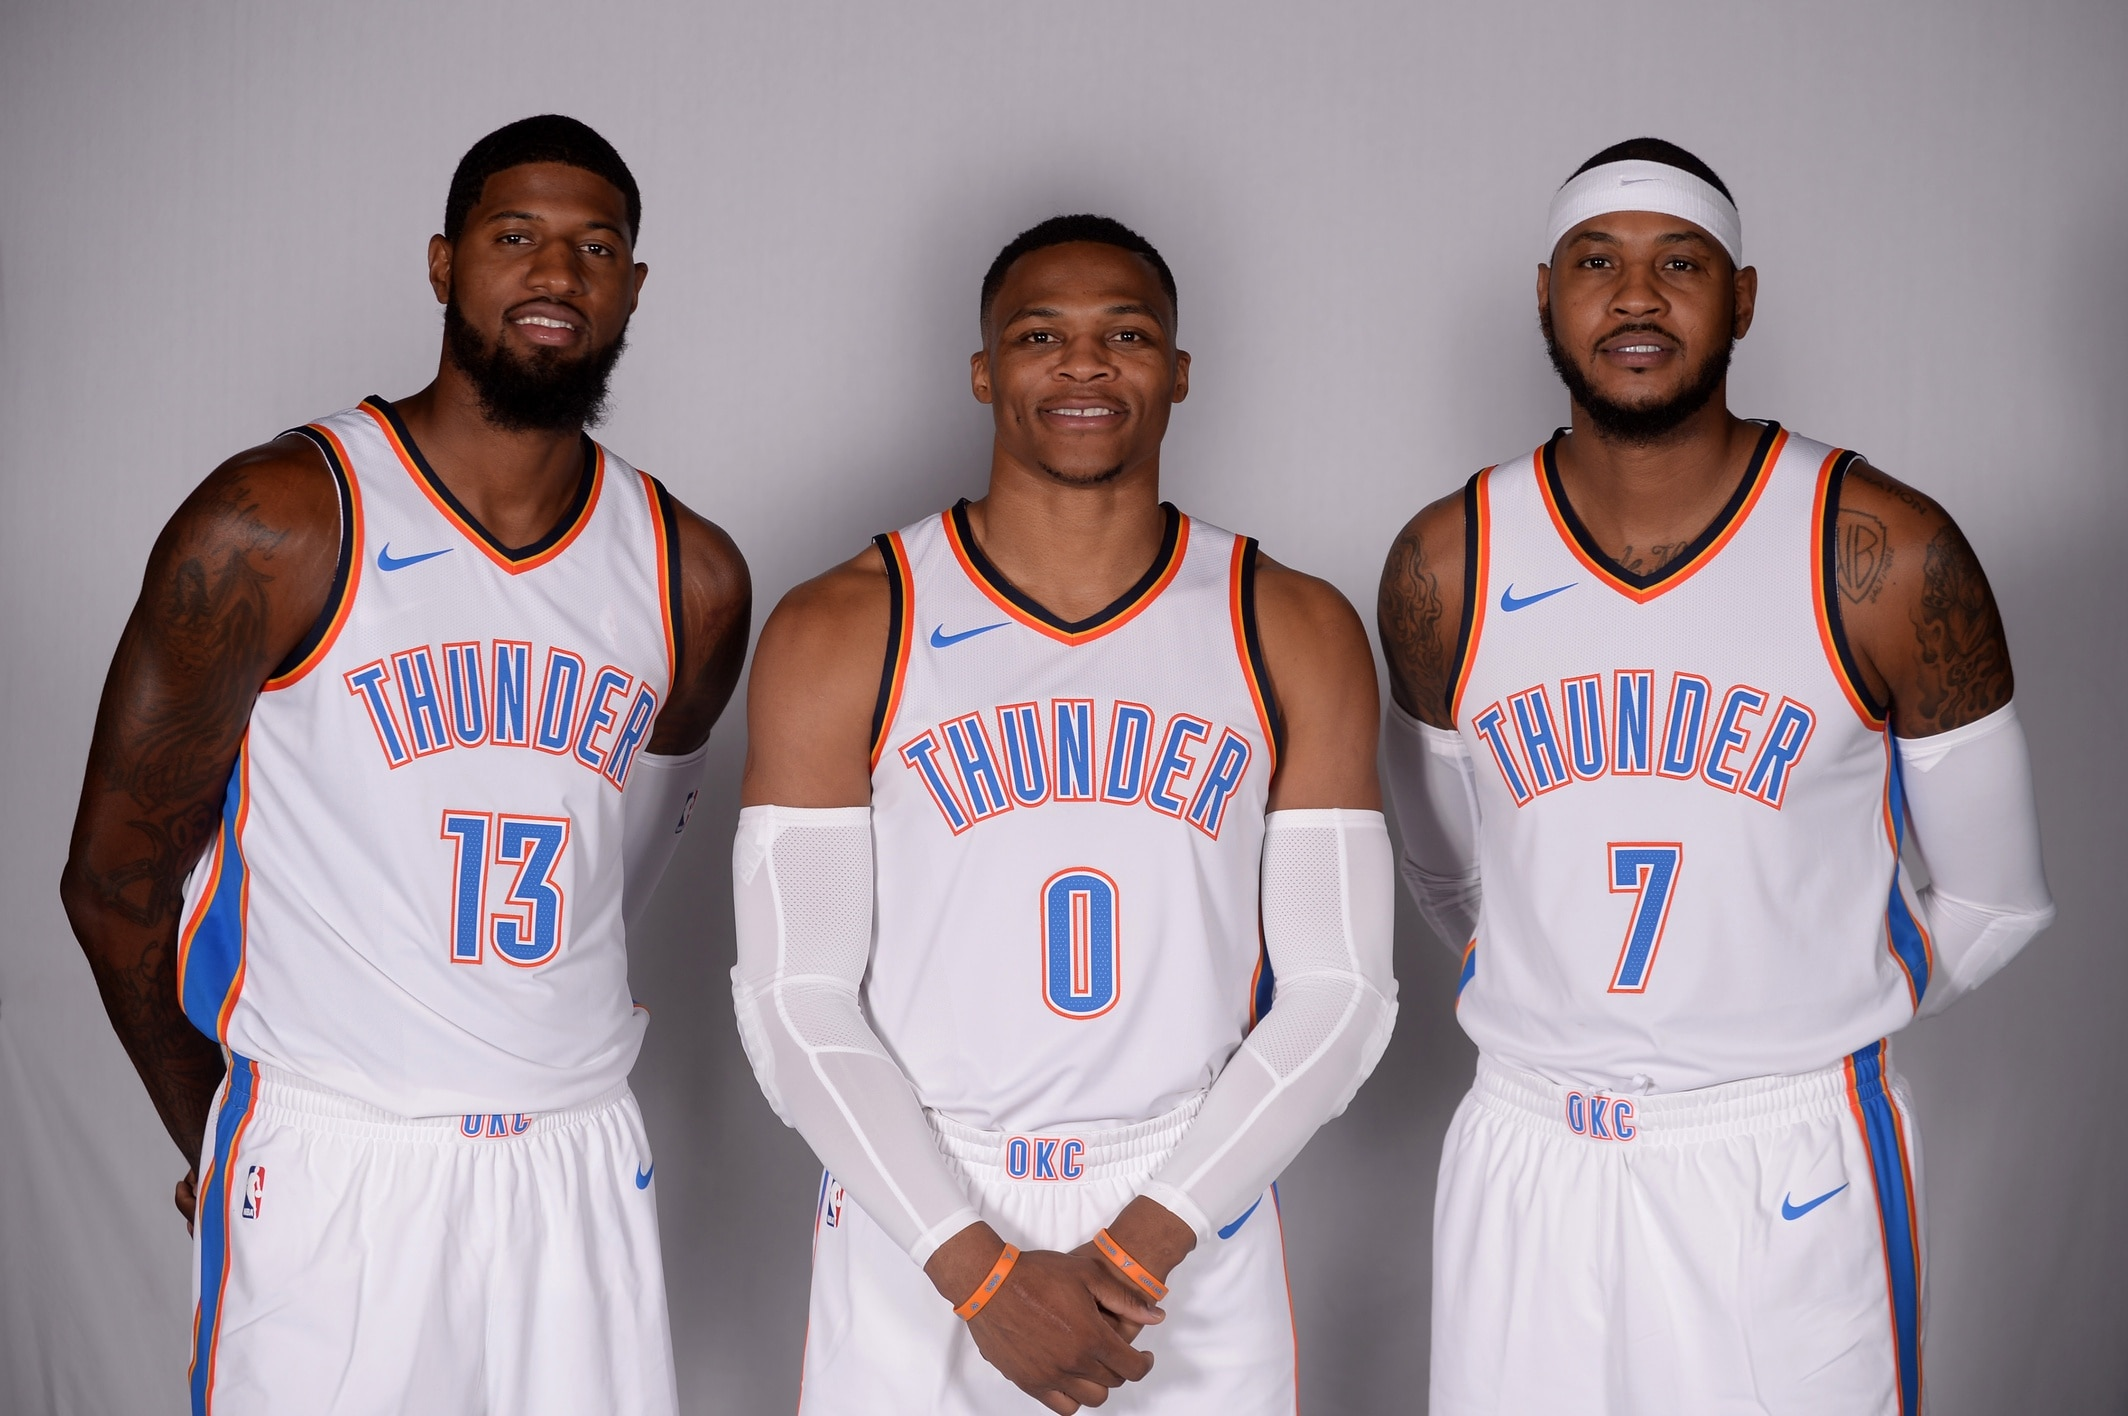 online retailer 3eb61 d4331 Paul George: Russell Westbrook committing to OKC 'absolutely ...